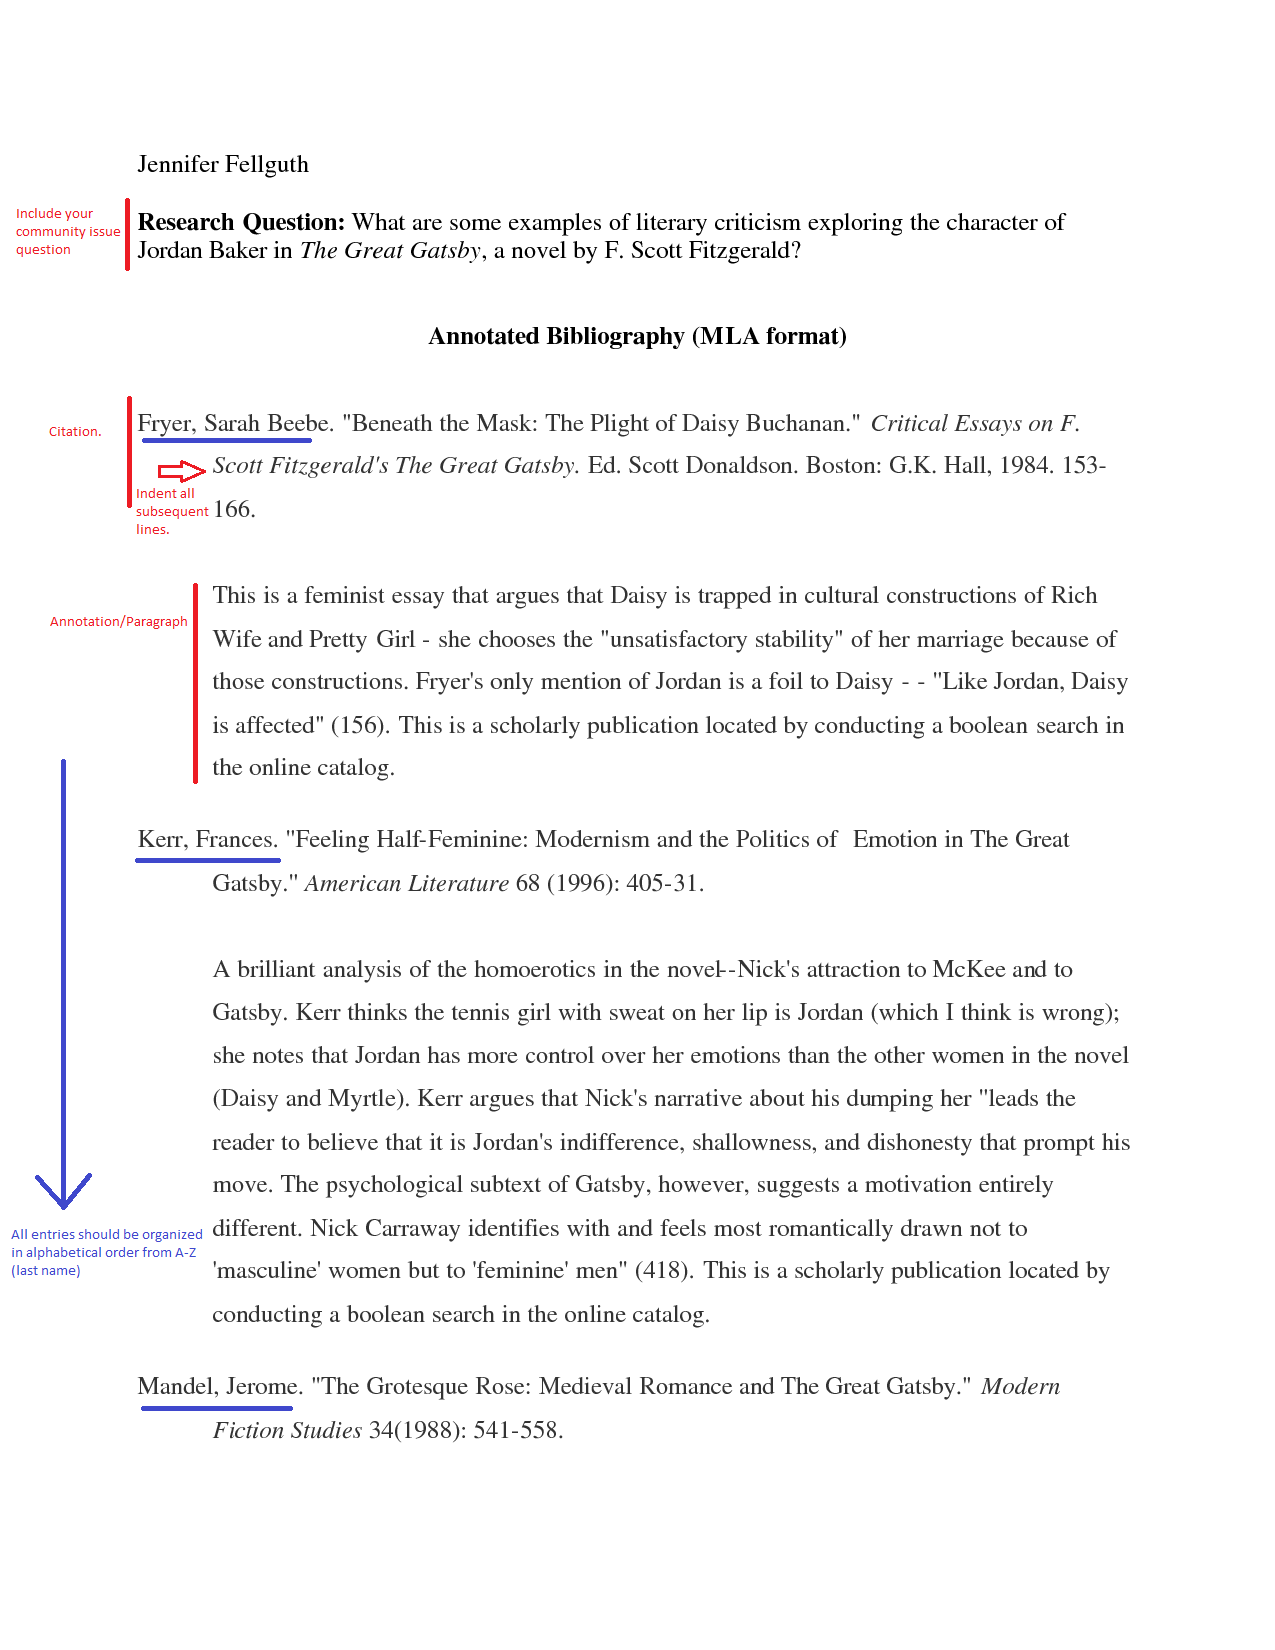 009 Citing An Essay How To Cite Images In Mla Format Did You Know Annotatedbibsampleanno Write My Prices Wonderful A Critical Book Your Own 8th Edition Full